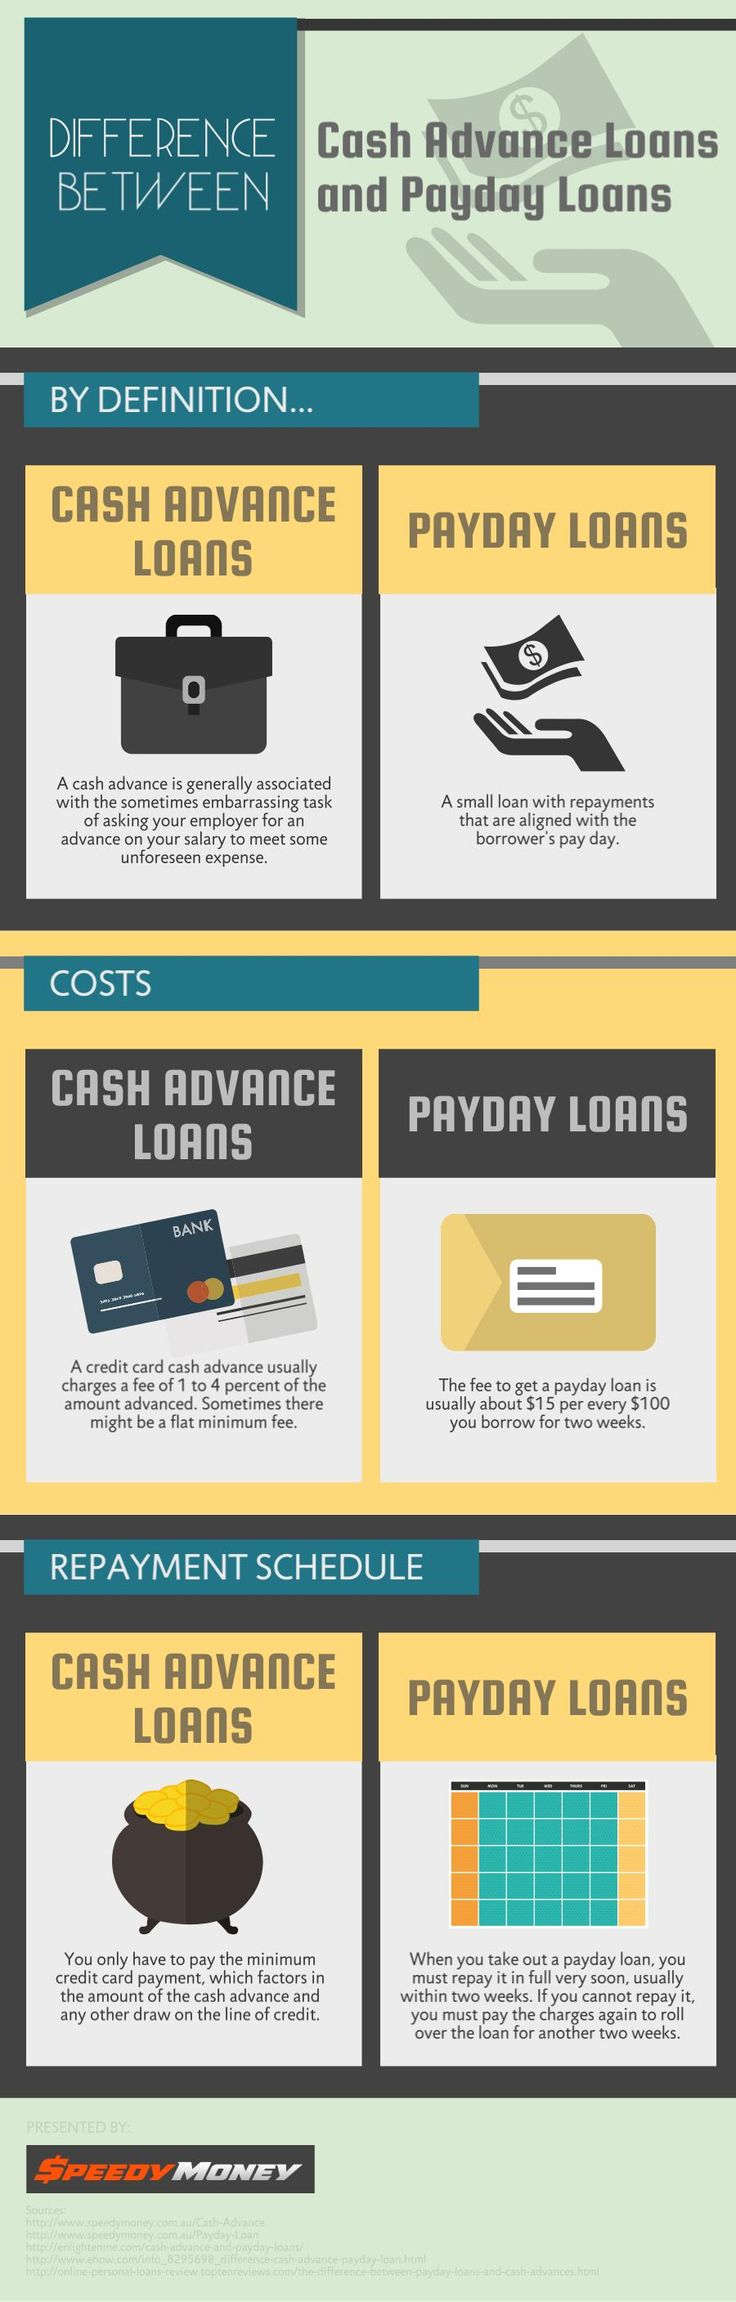 Difference Between Cash Advance Loans and Payday Loans